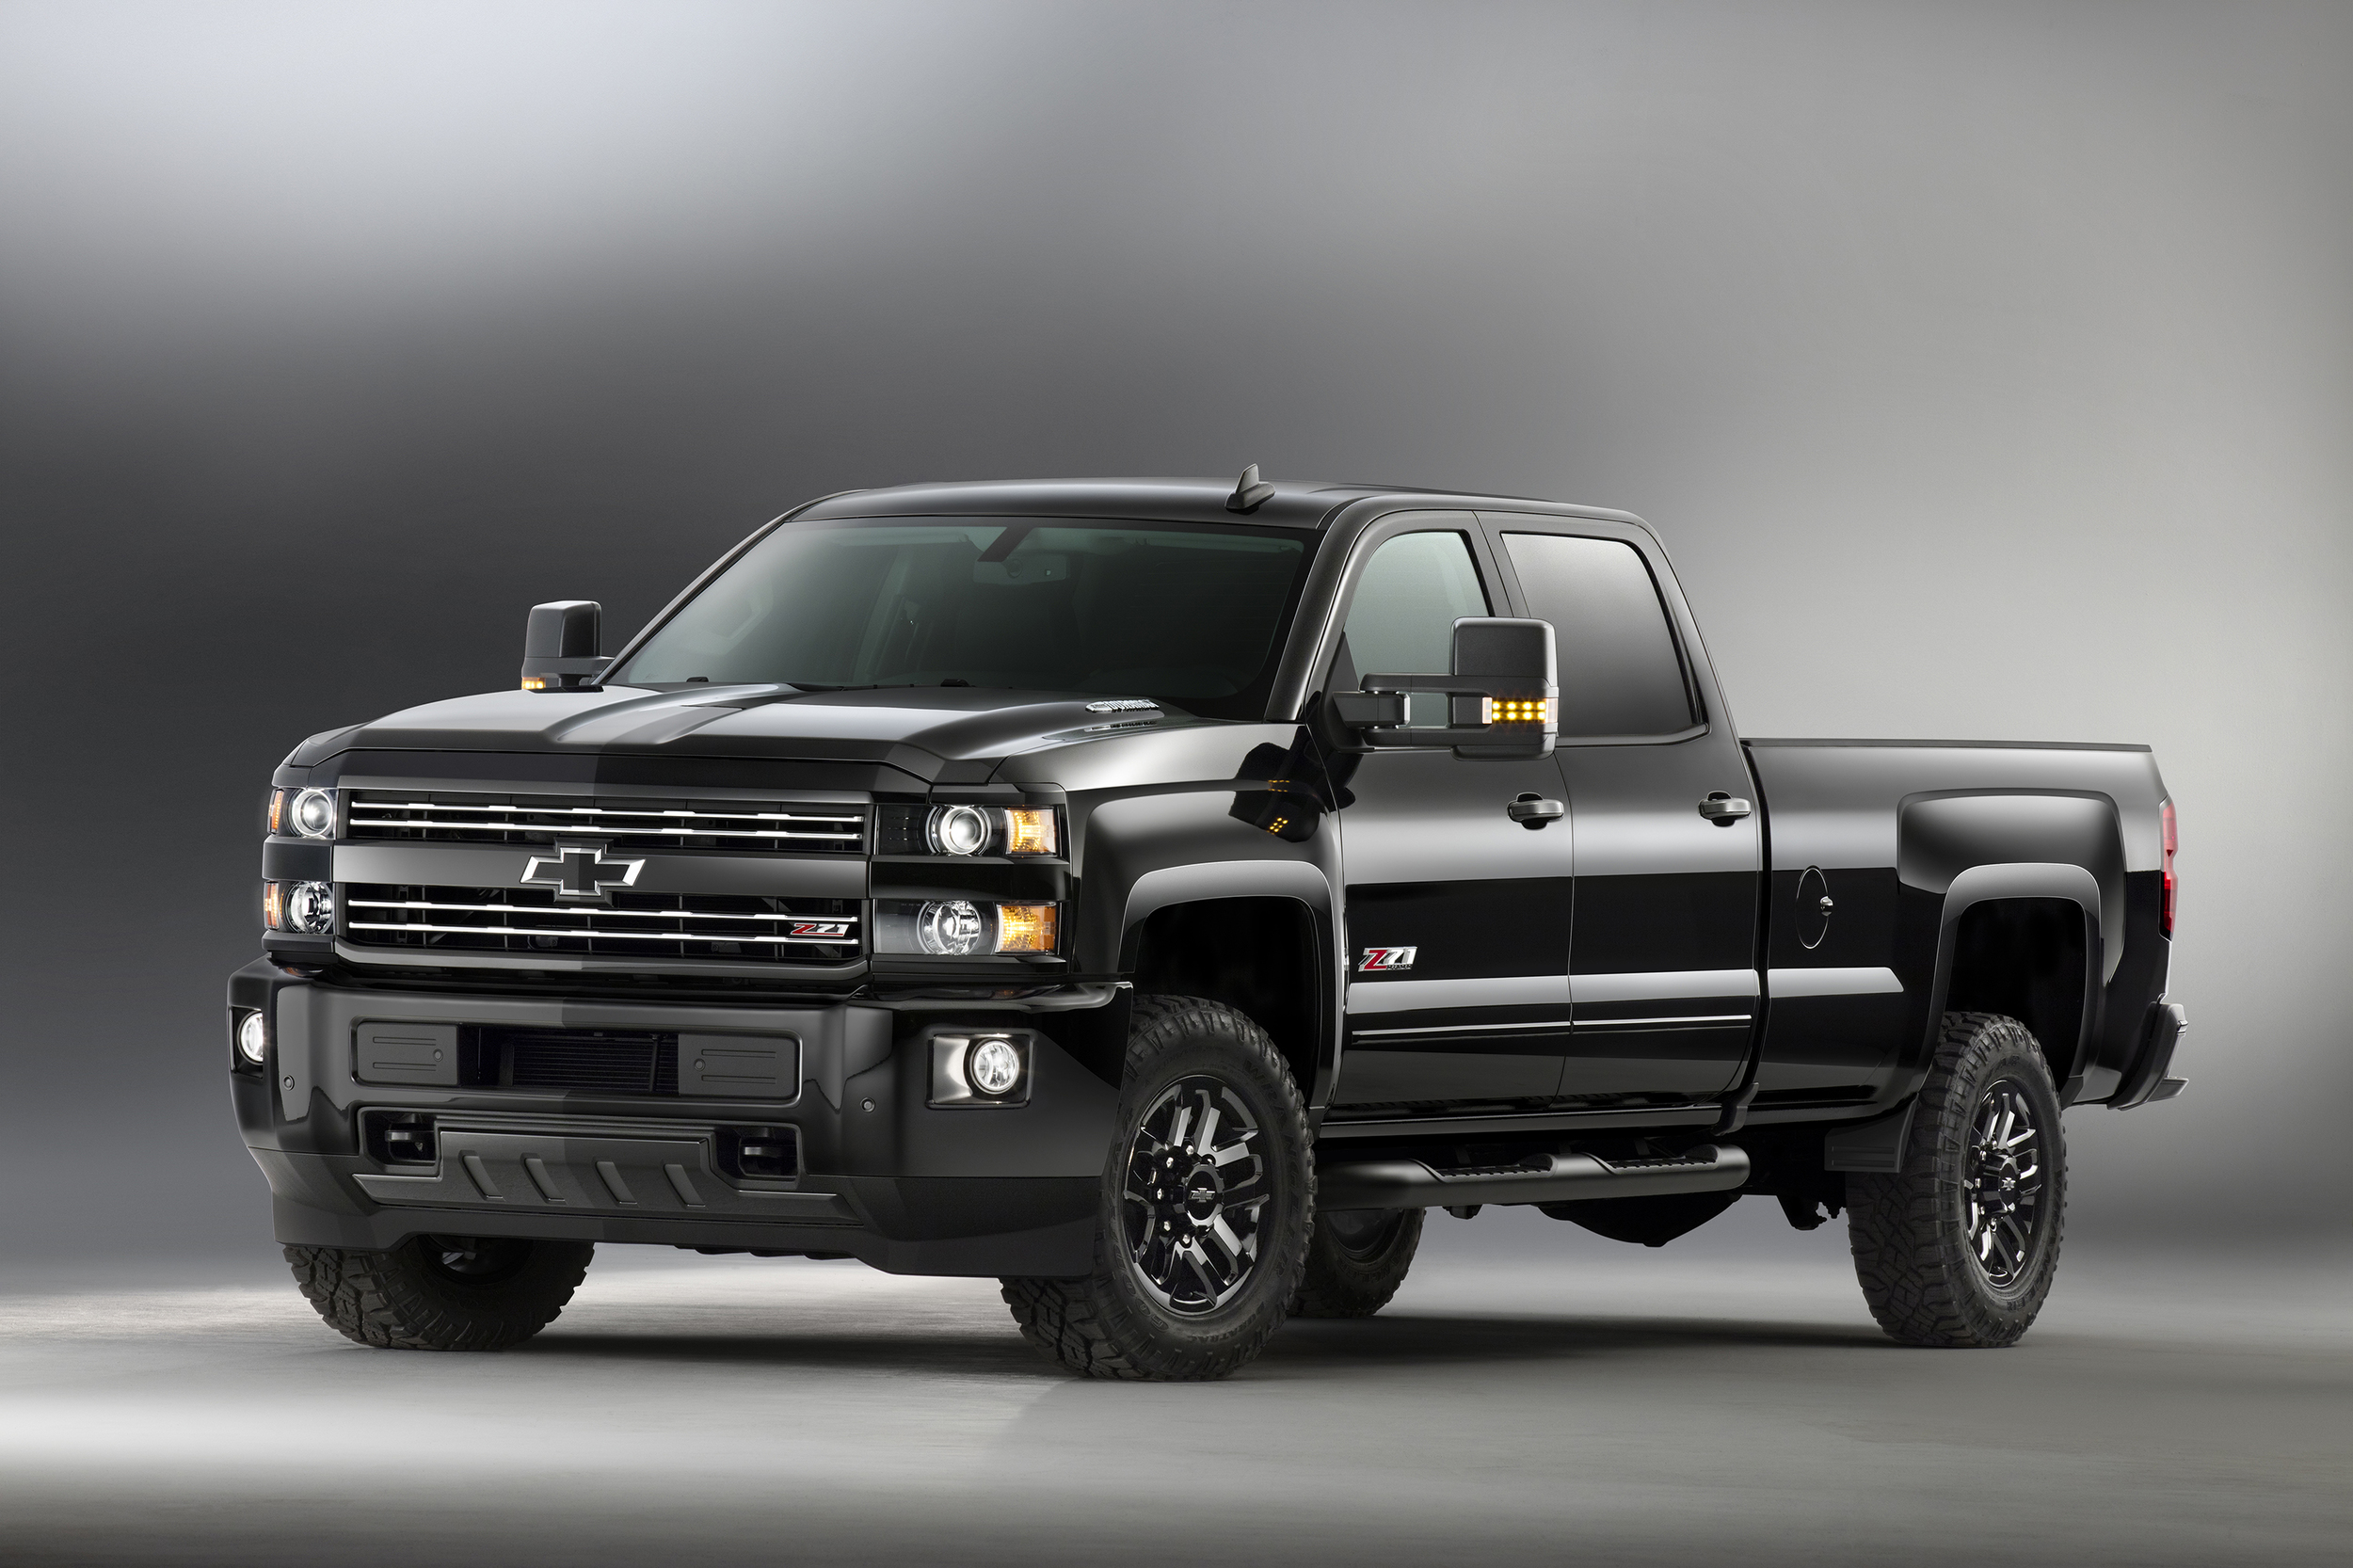 2017 Chevrolet Silverado Midnight edition